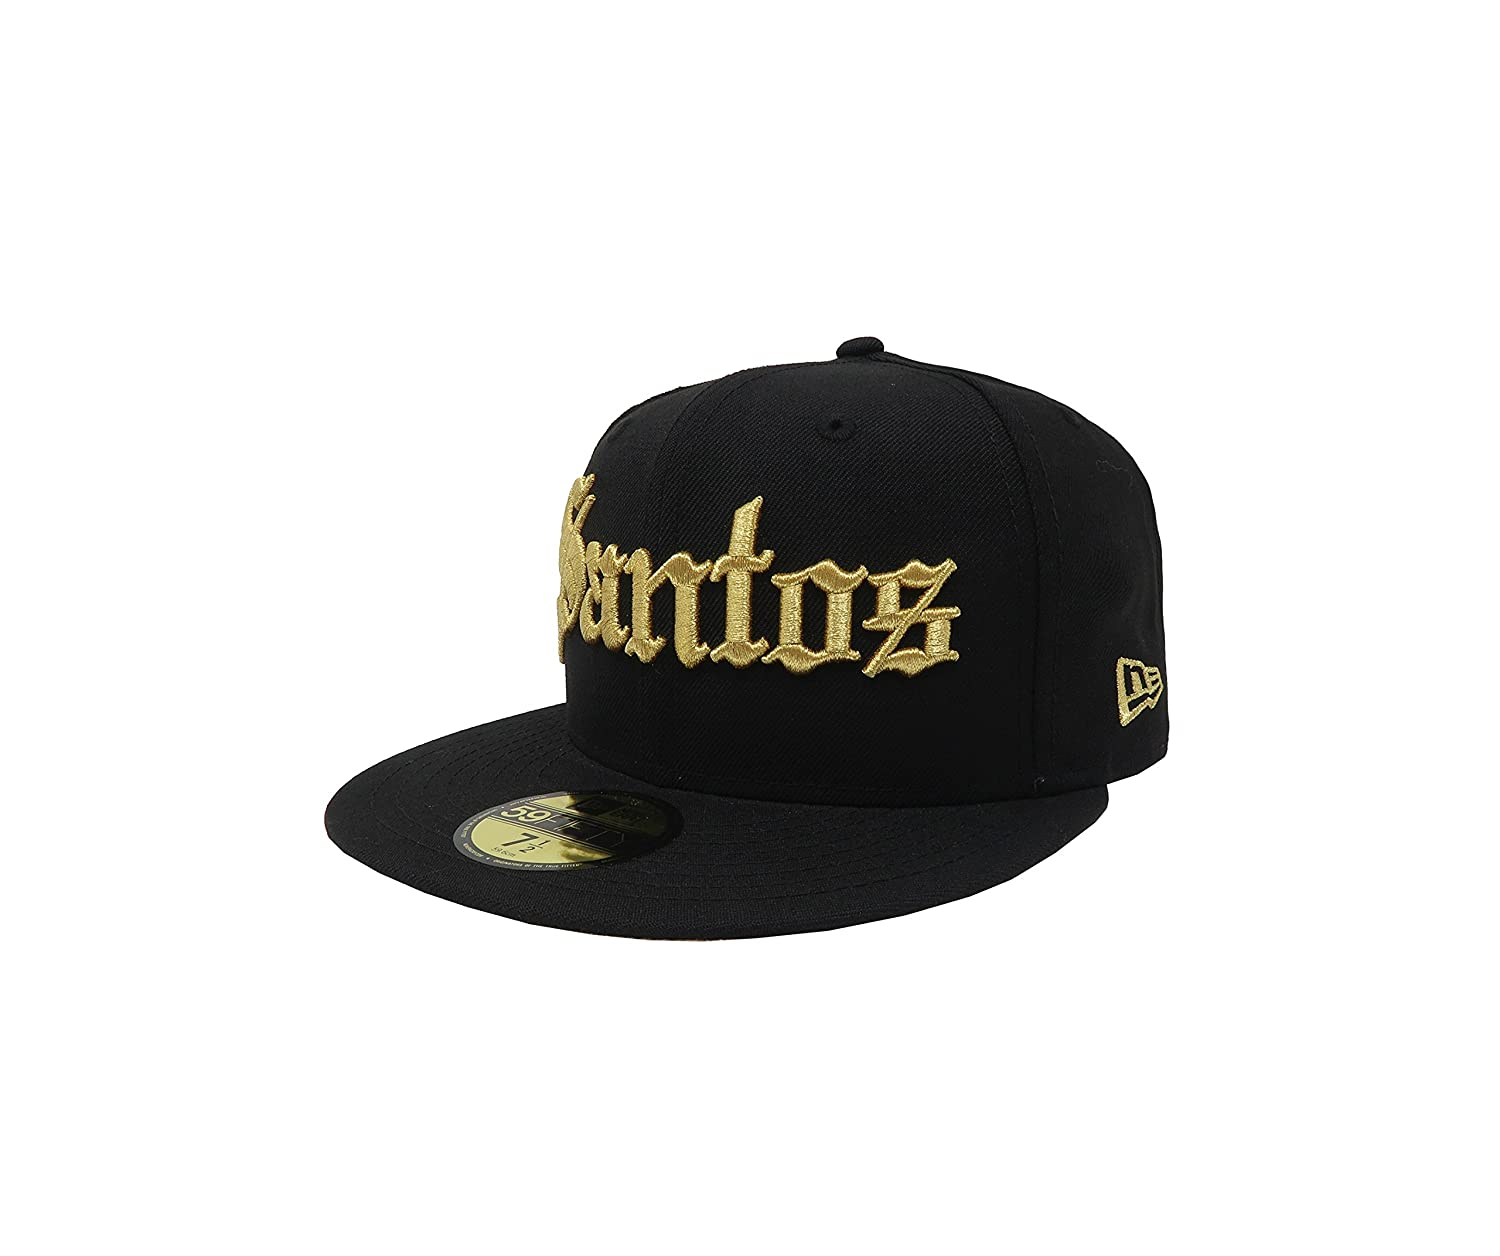 Amazon.com: New Era 59Fifty Hat Santos Laguna Soccer Club Mexican League Black with Gold Gorra: Clothing